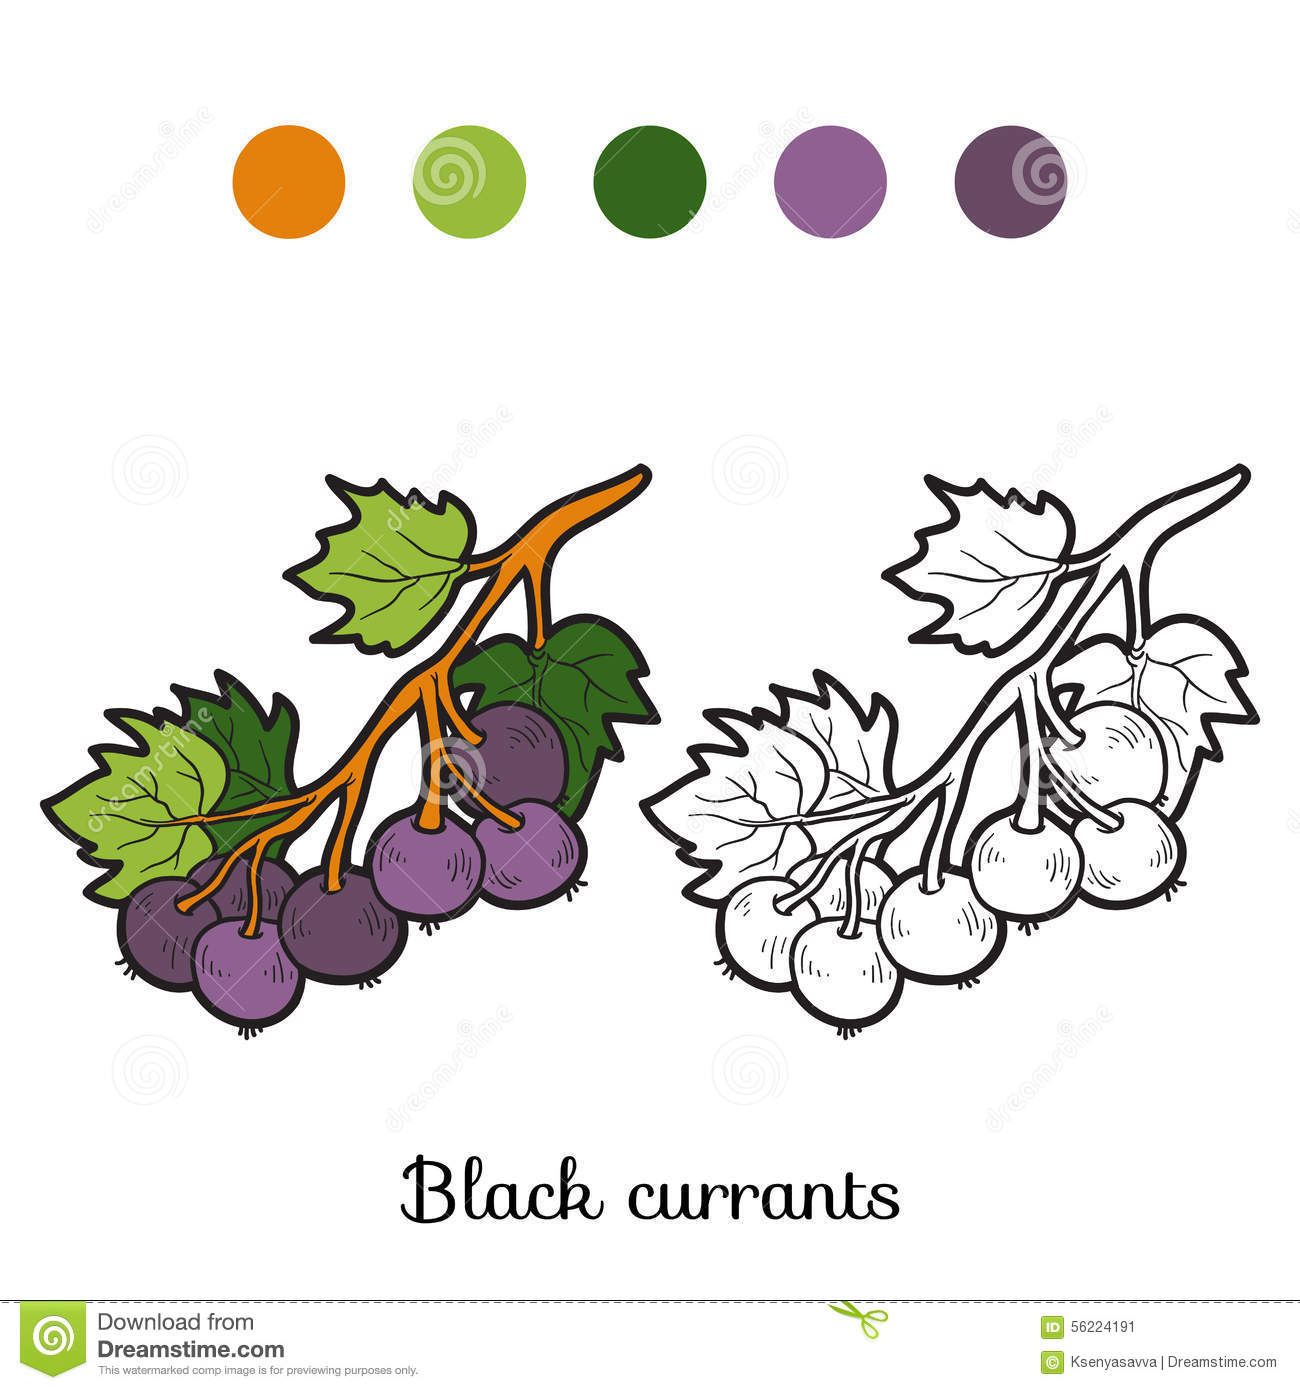 Currants coloring #13, Download drawings